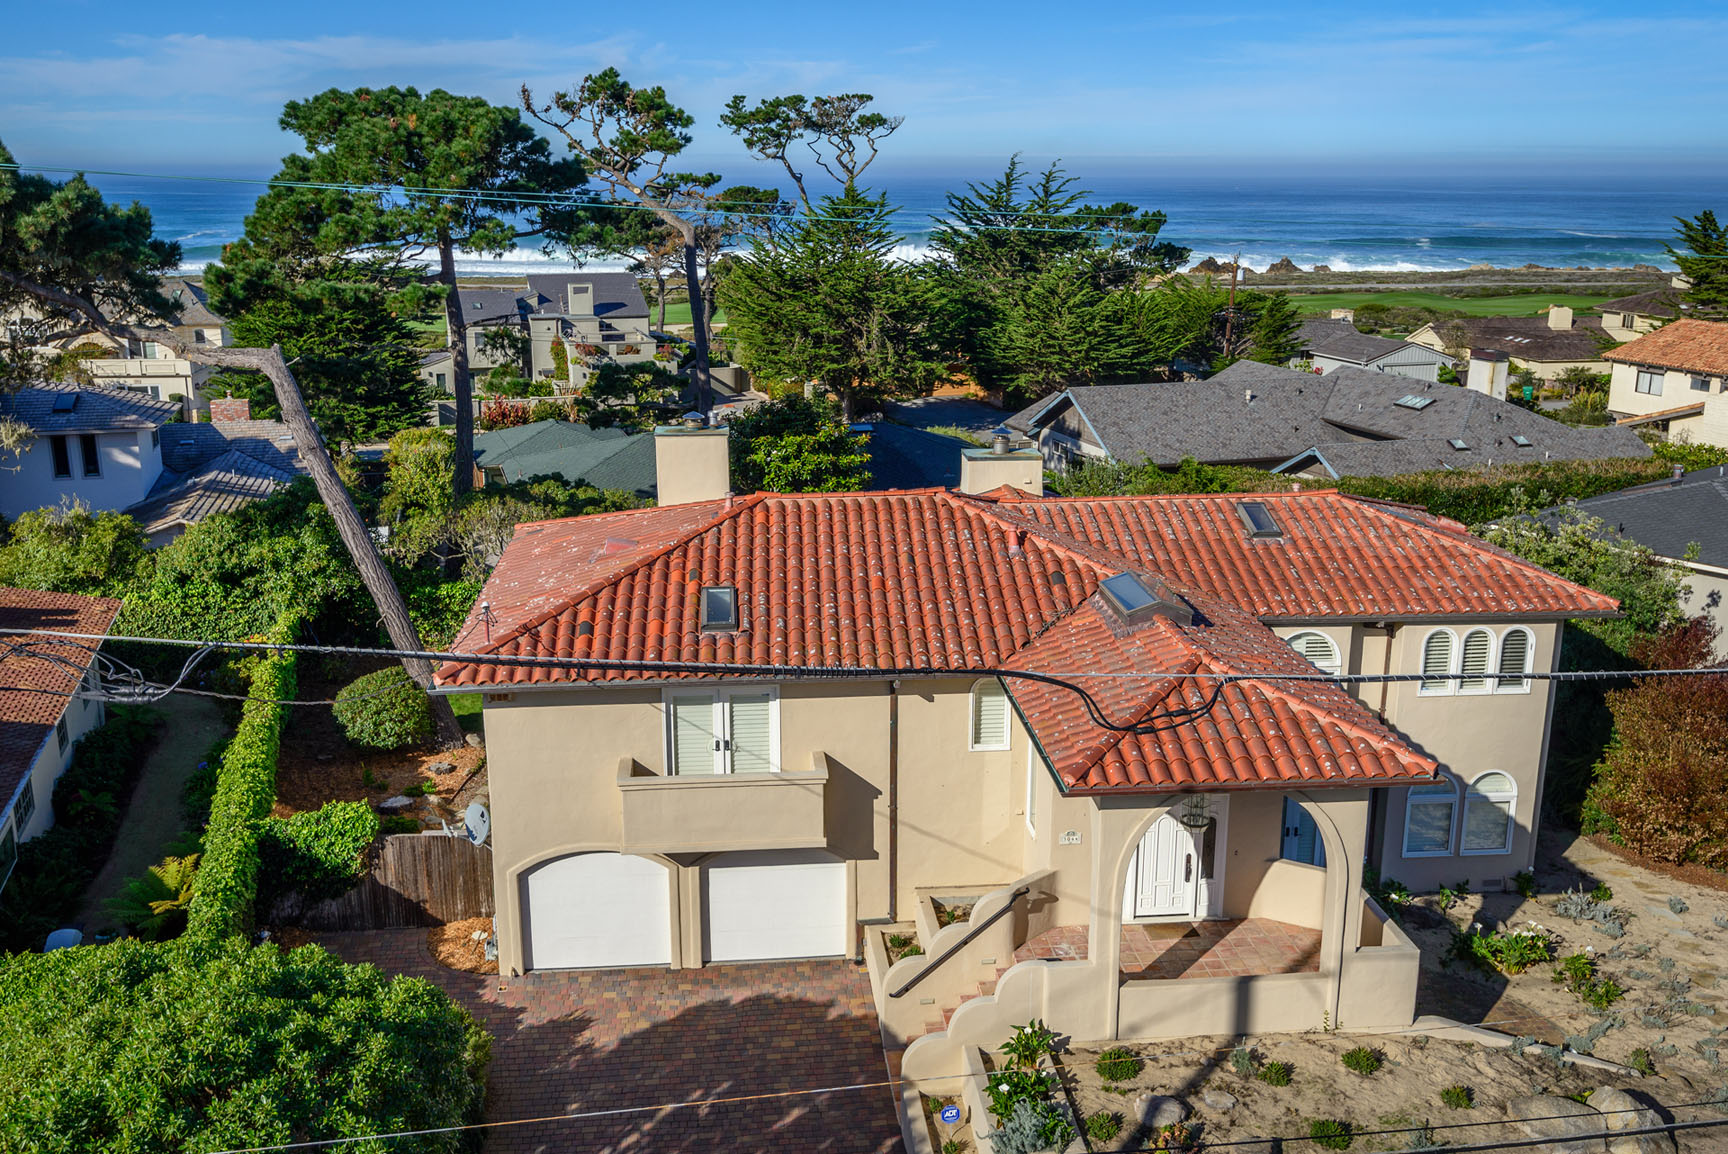 Pebble Beach Ocean View Home for sale